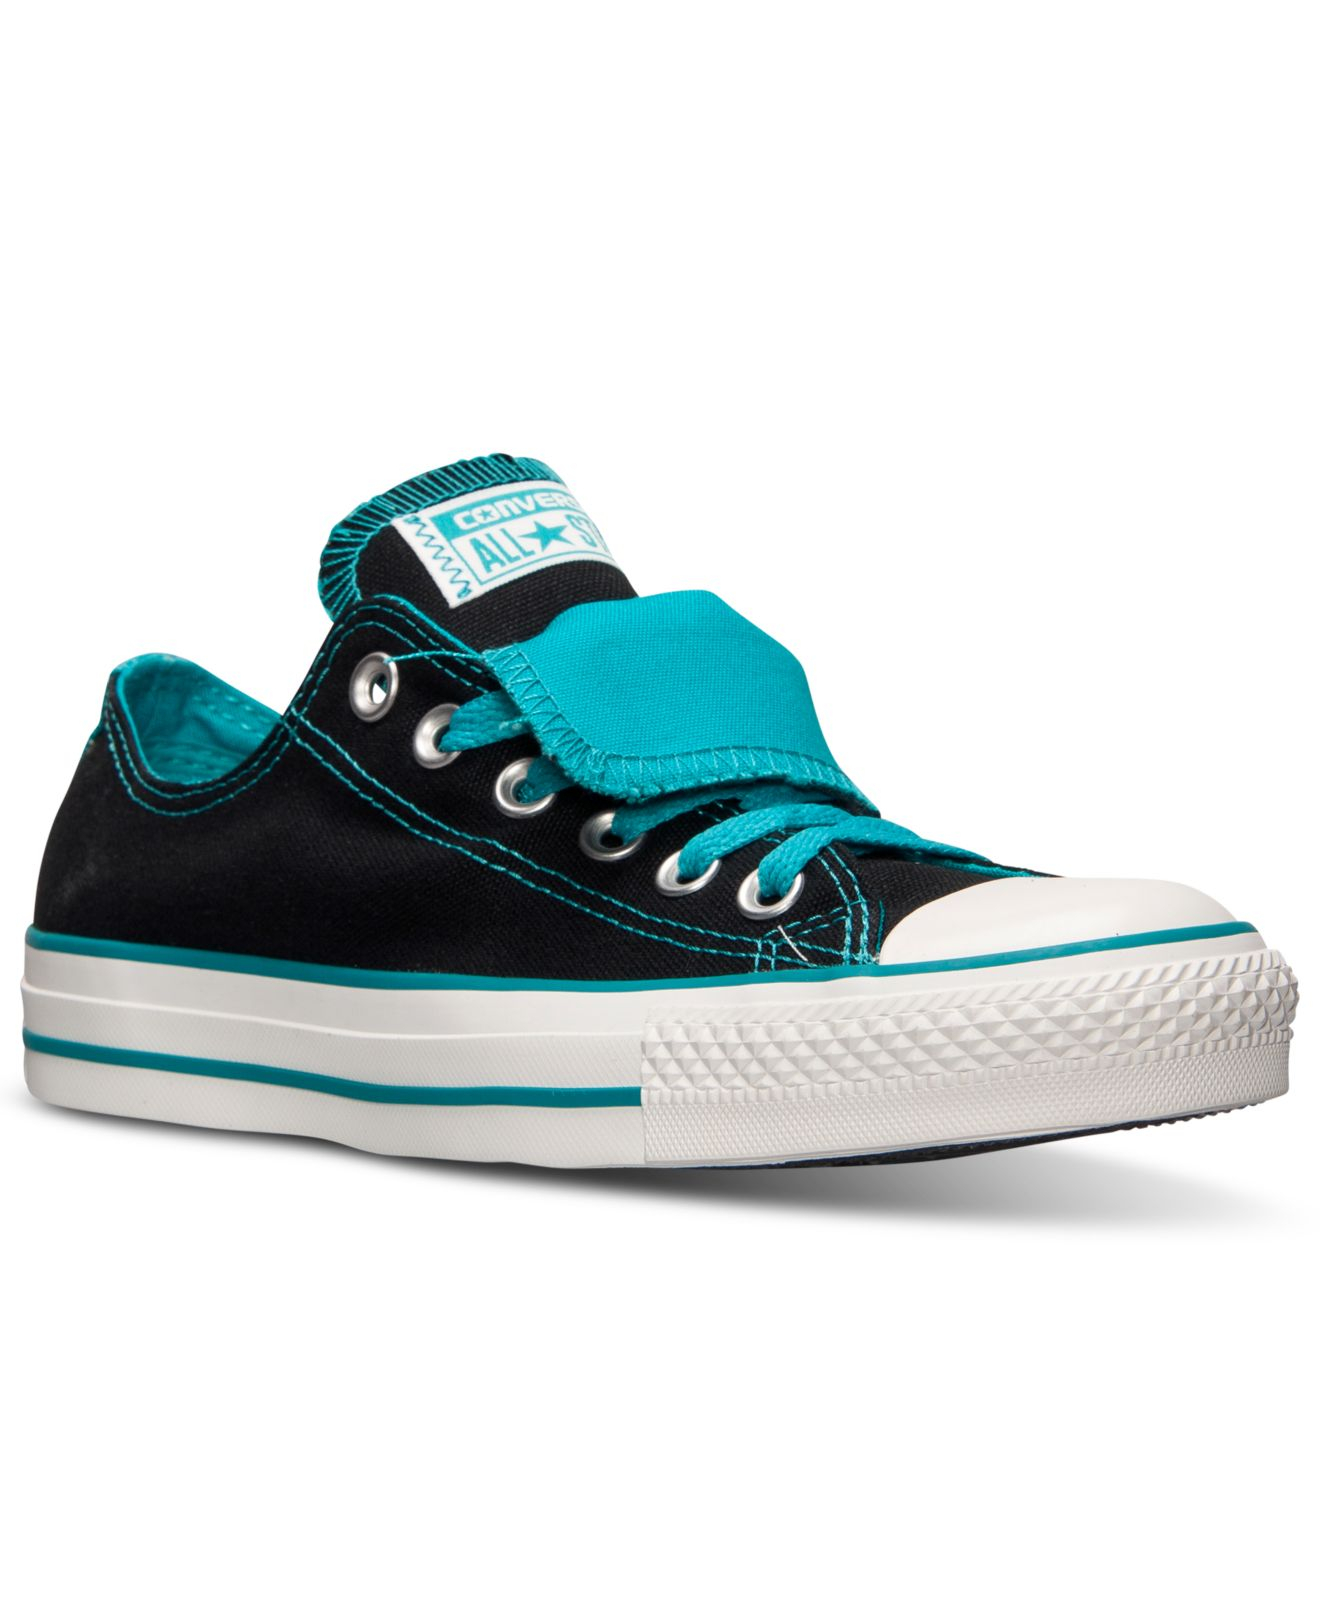 240d8e3432c0 Lyst - Converse Women S Chuck Taylor All Star Double Tongue Casual ...